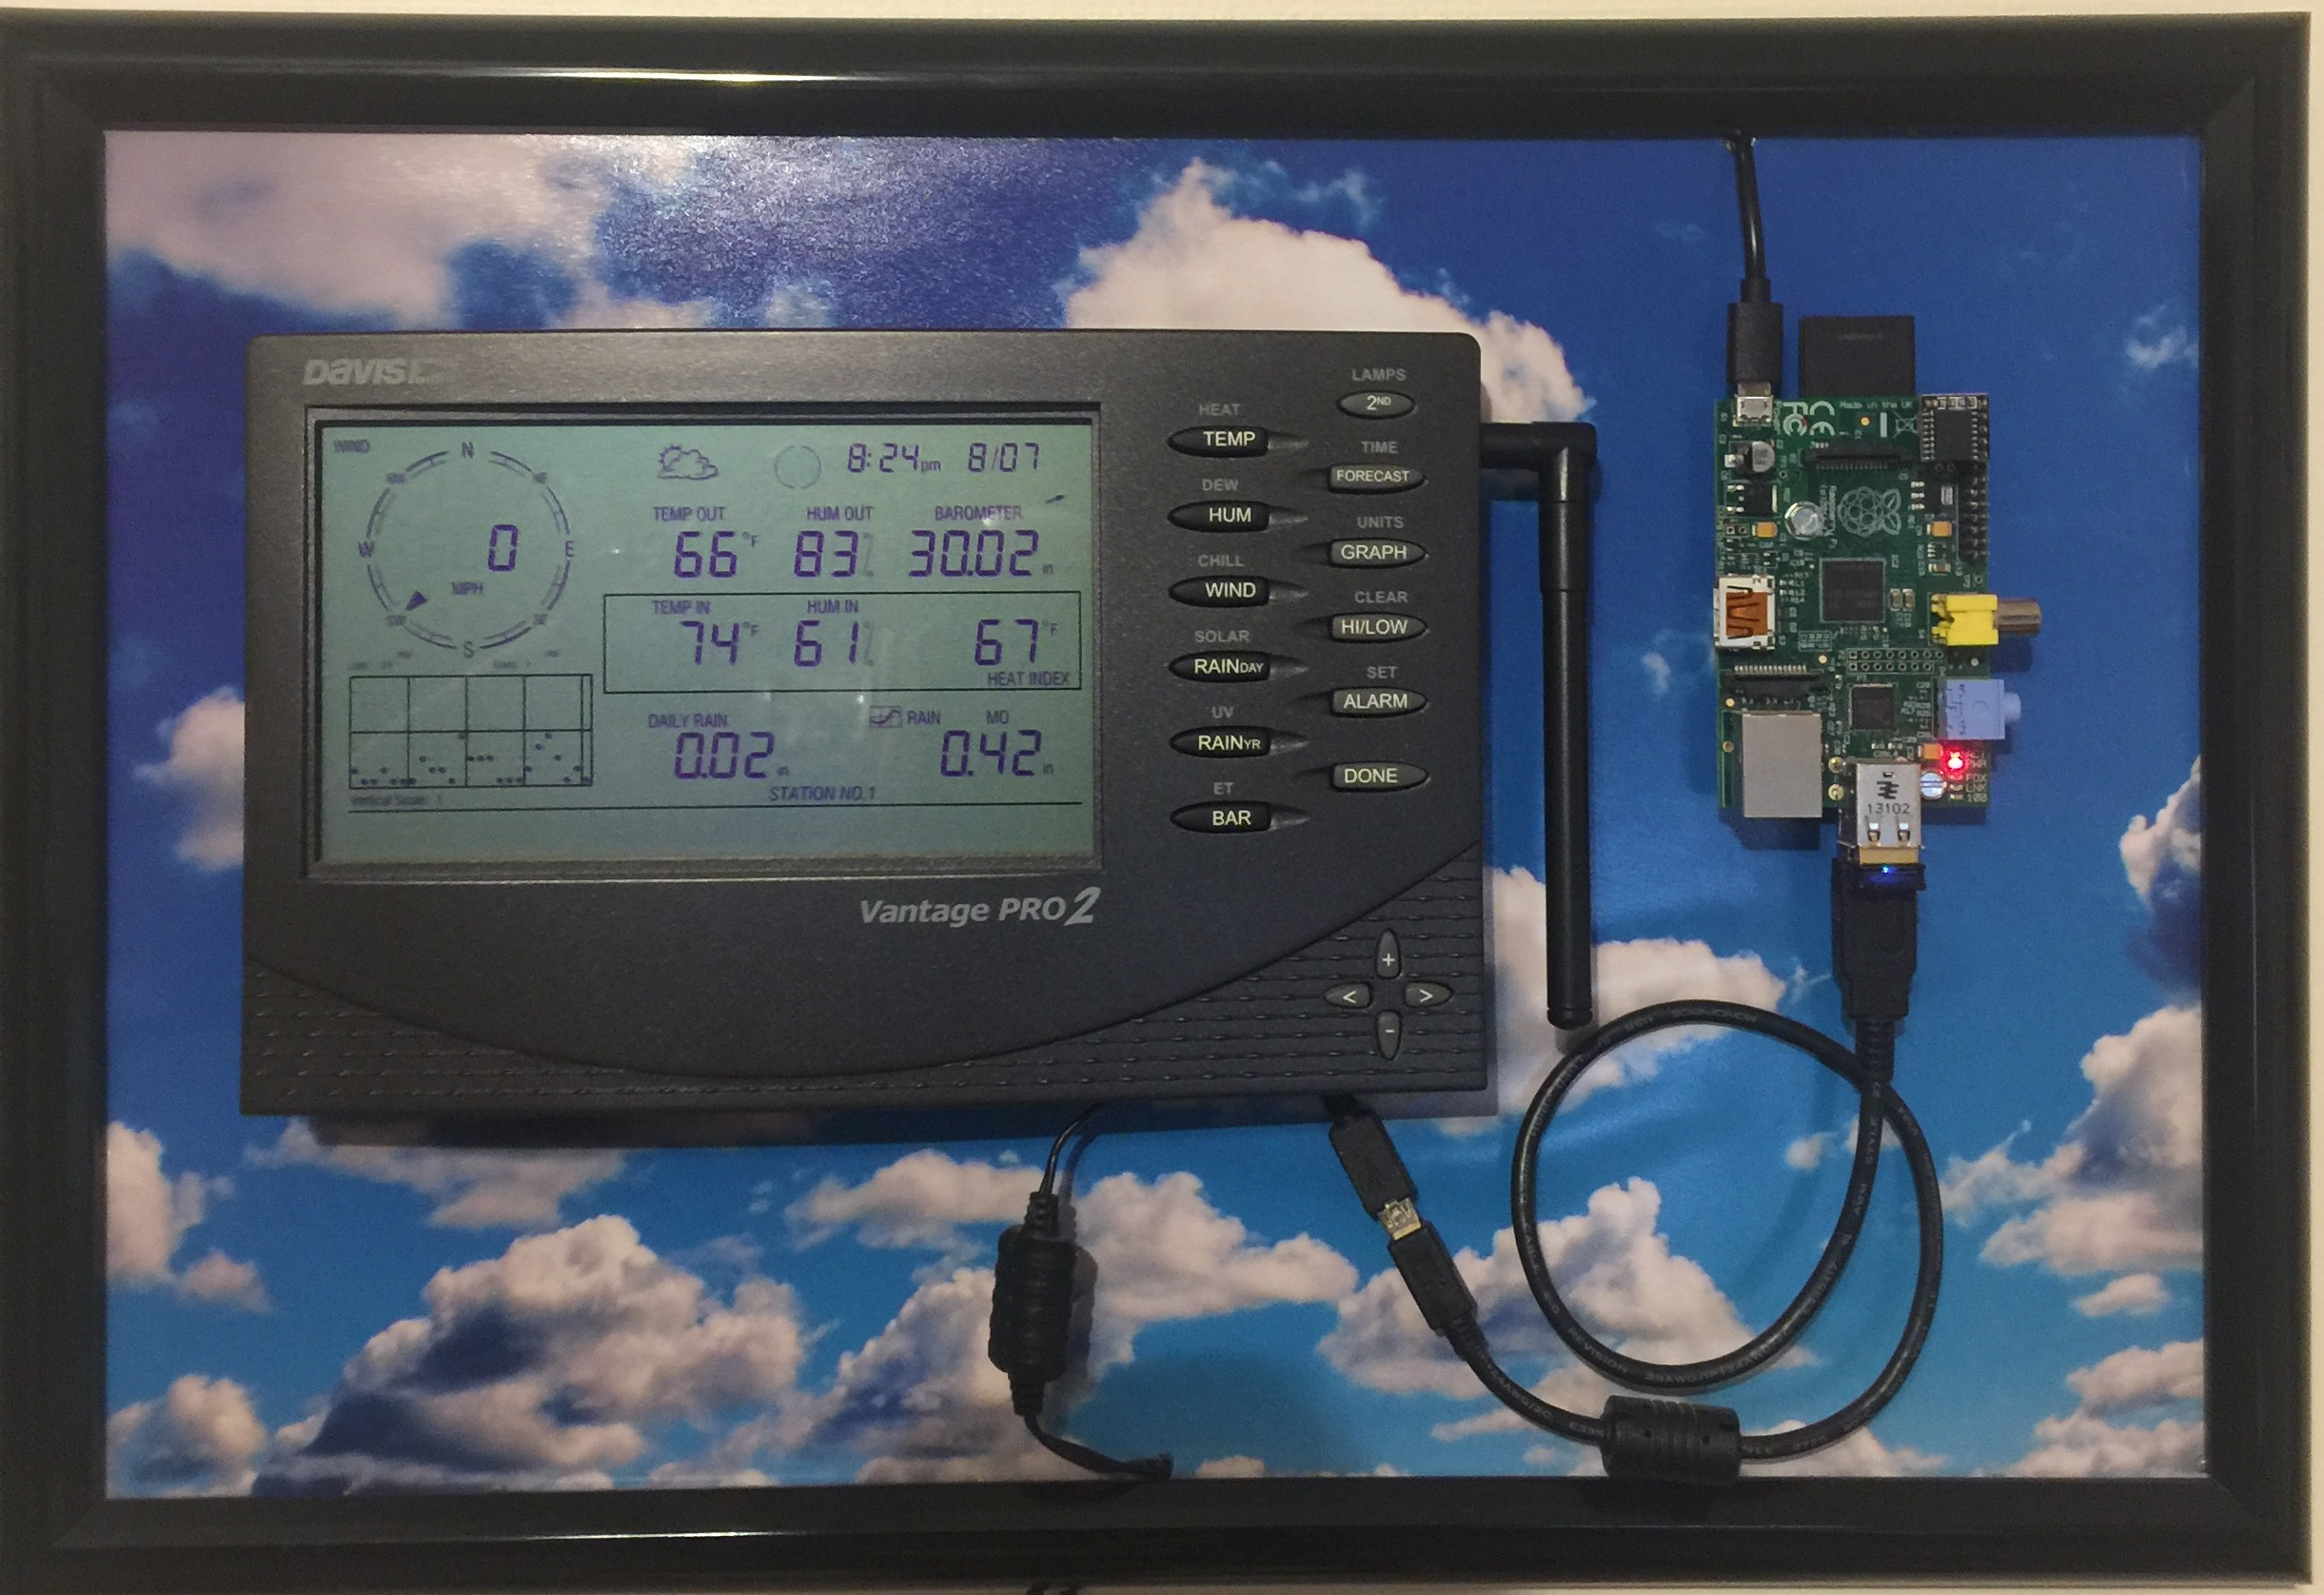 Setting up Personal Weather Station to integrate with rachio